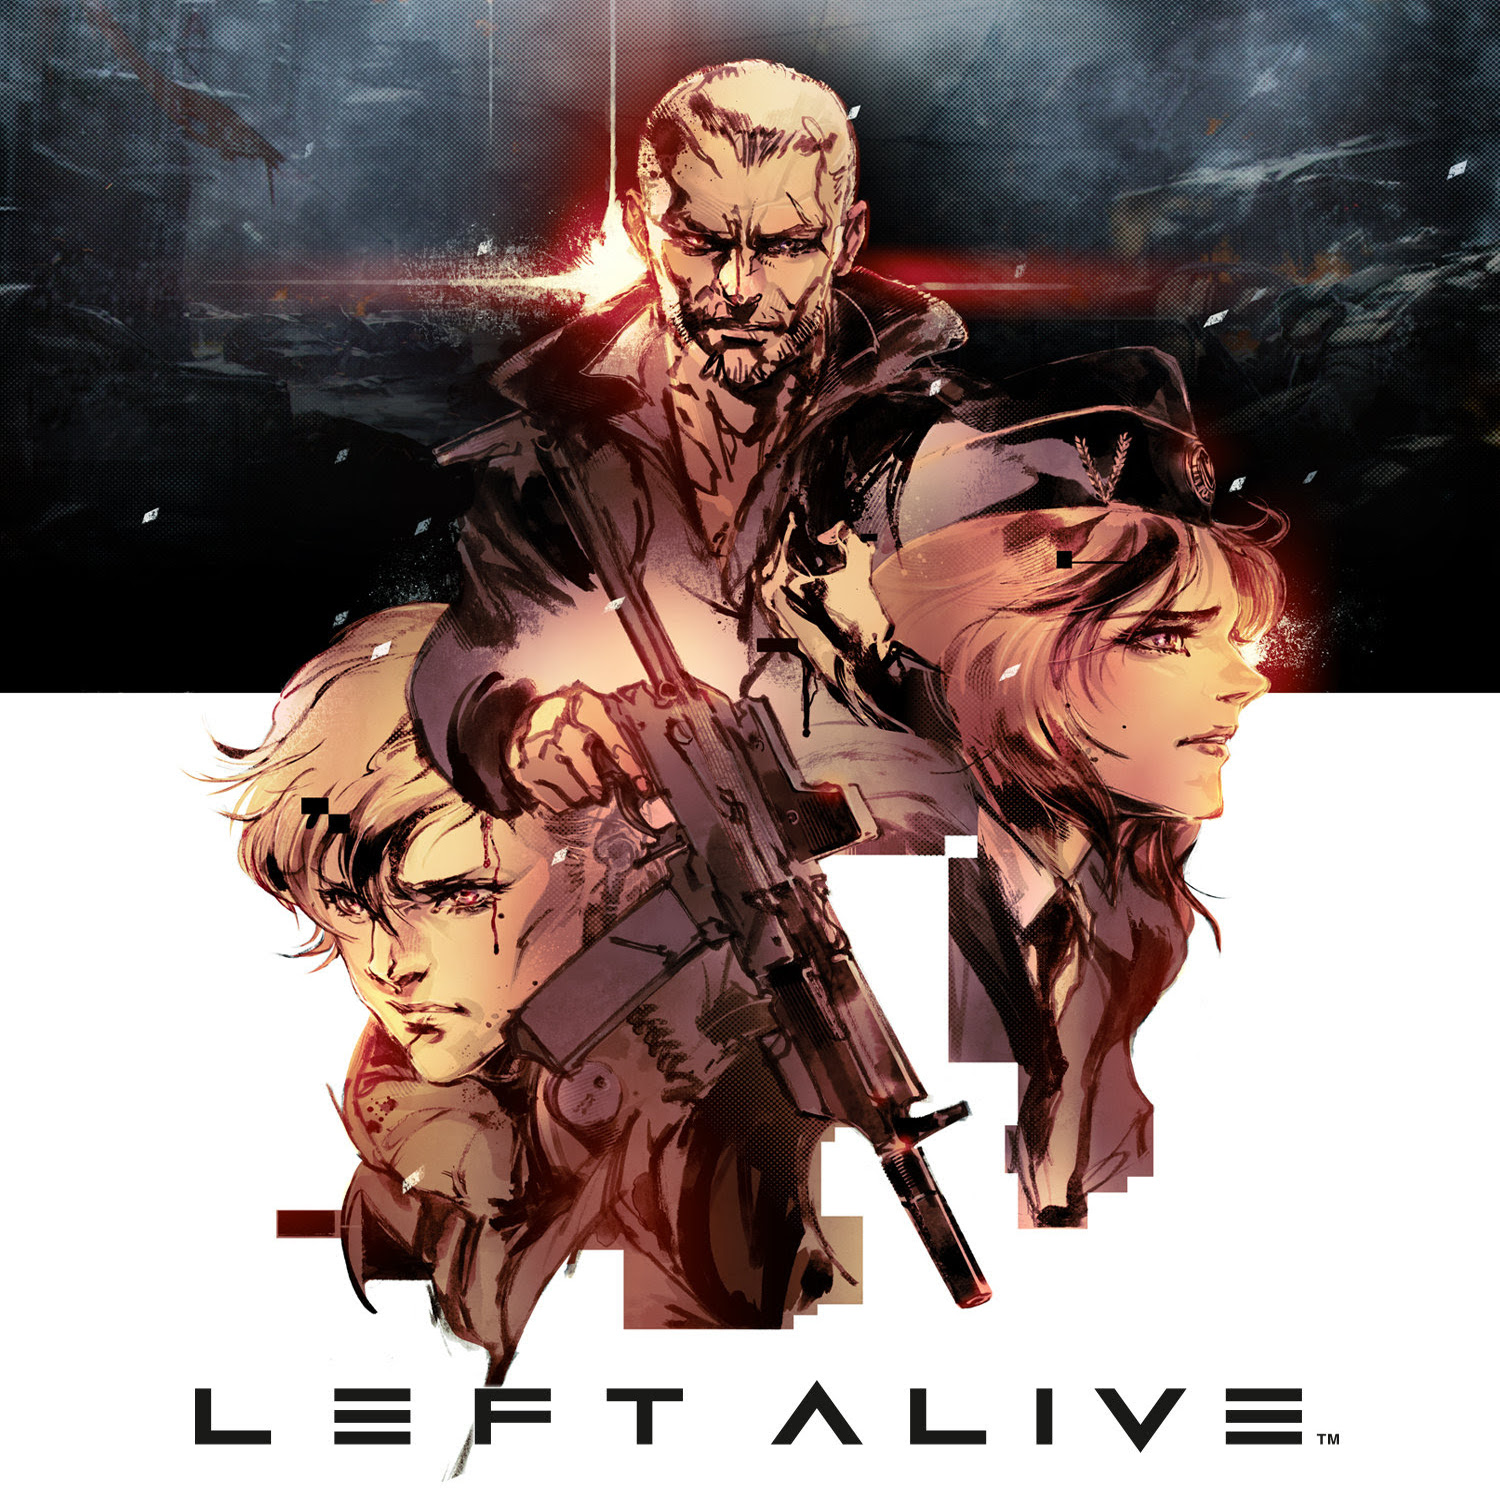 Left Alive Cover